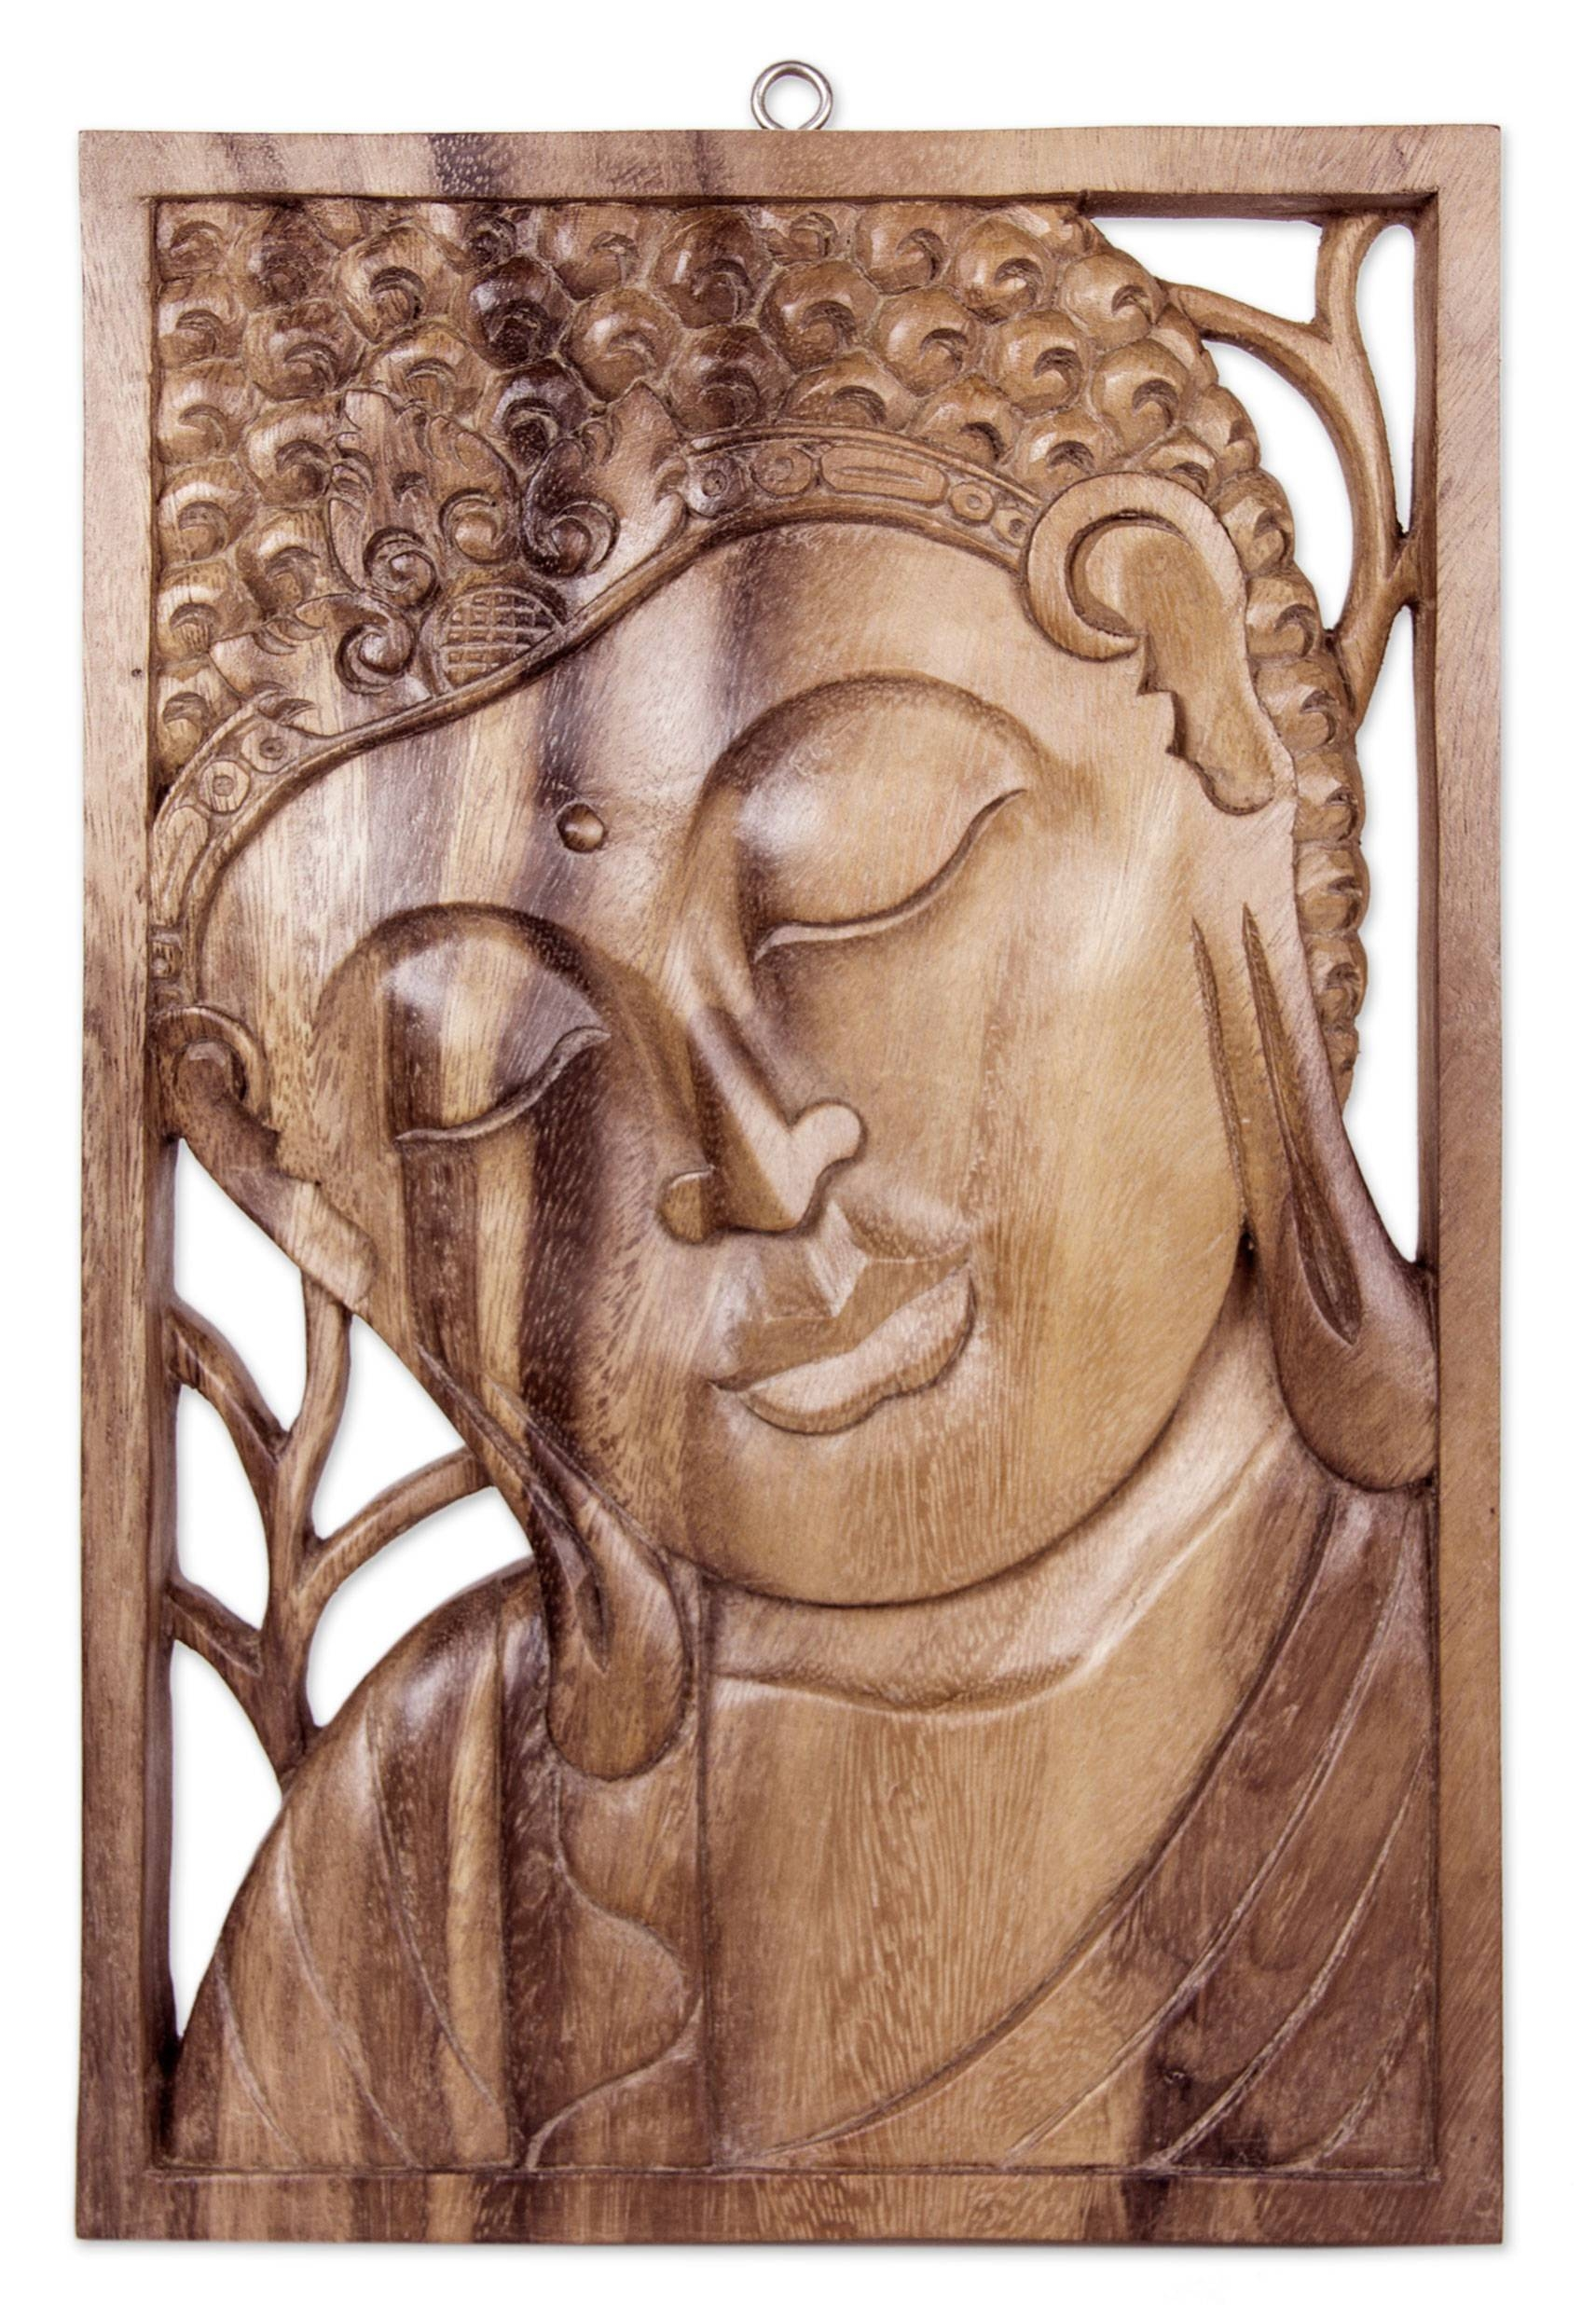 Zen Home Decor Ideas – Buddha Decor And Art | Novica Intended For 2017 Balinese Wall Art (View 30 of 30)